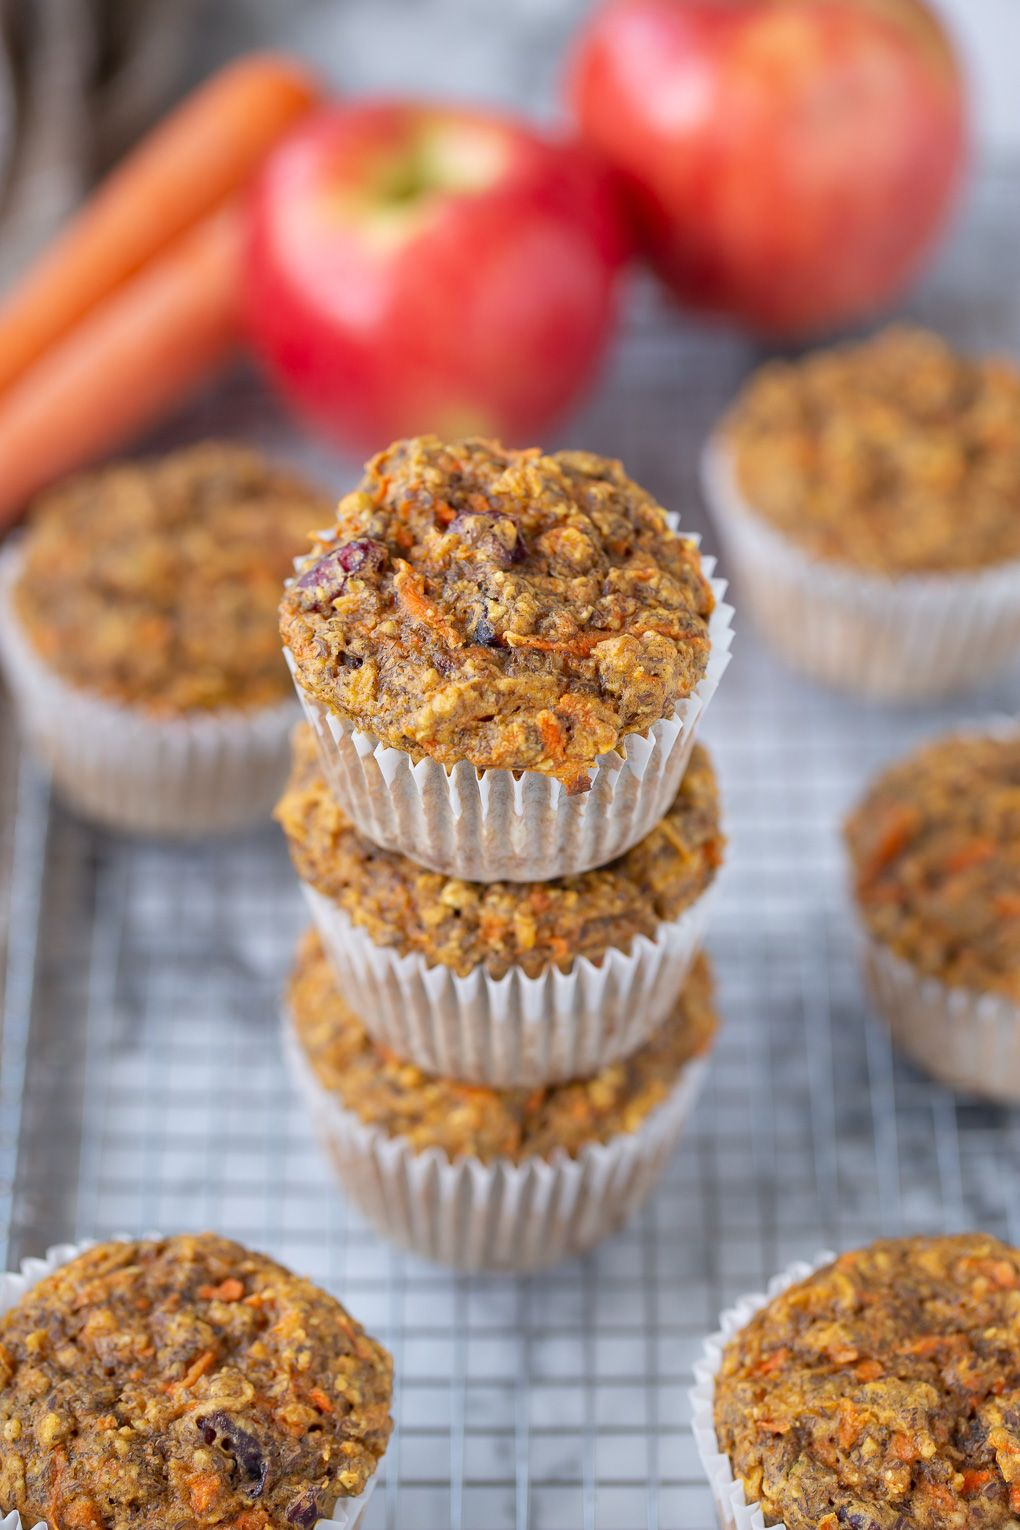 Delicious Bran Flax Seed Muffins